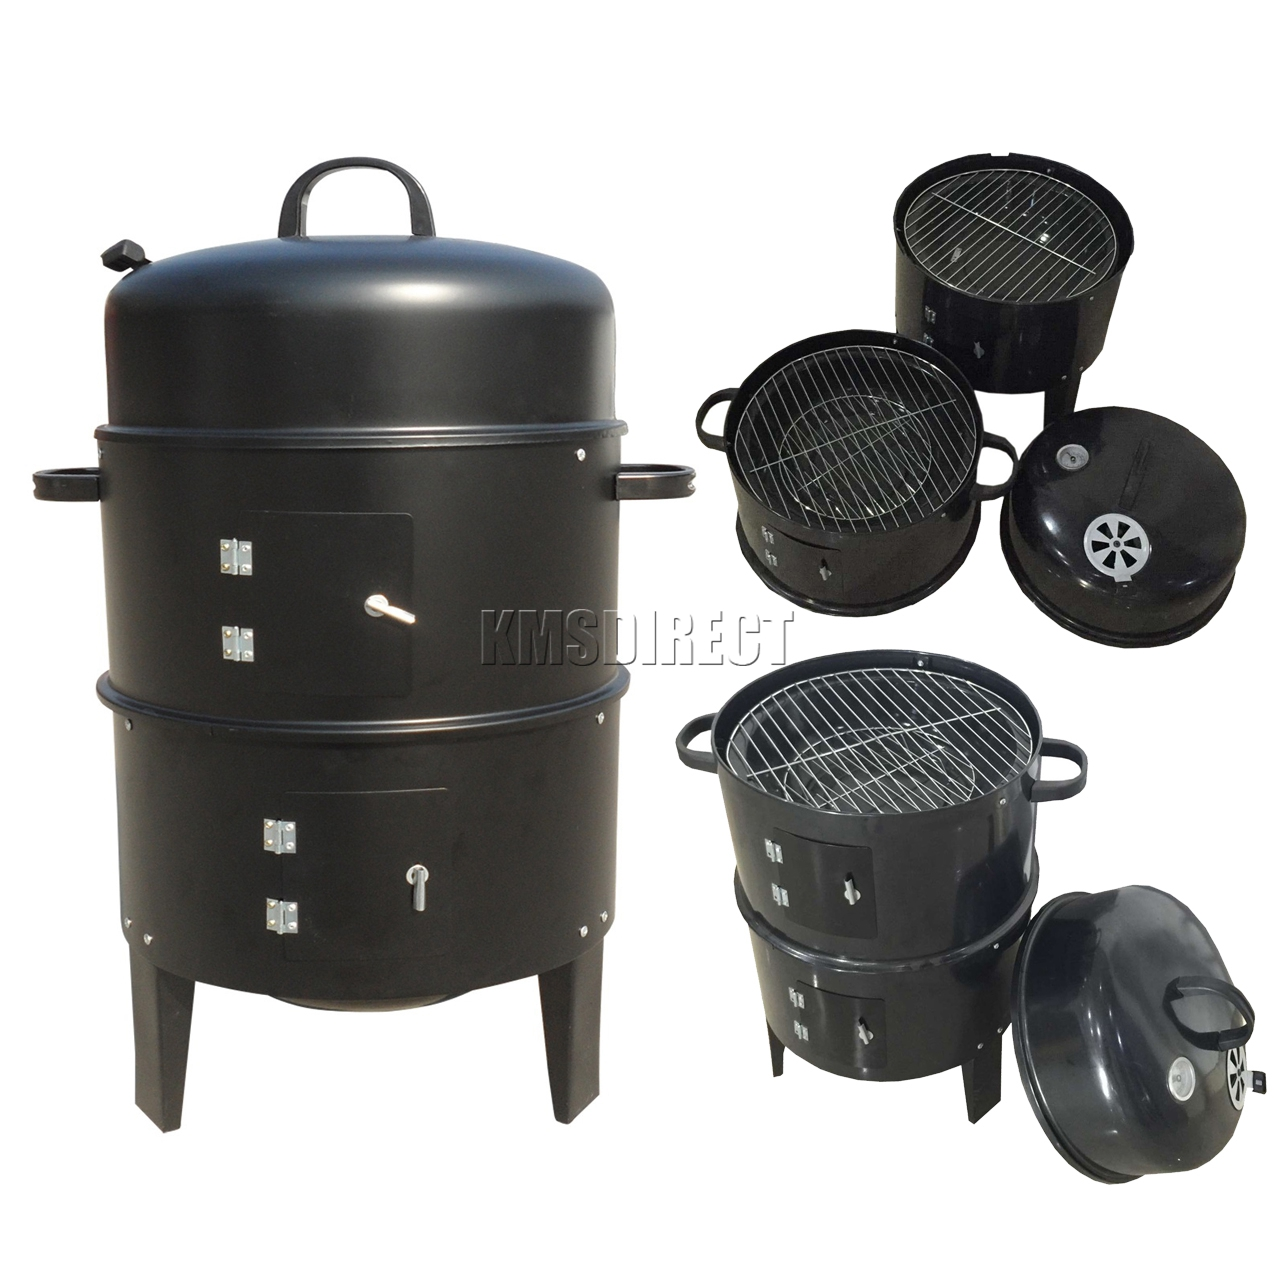 Low Gas Prices >> 3 Layer Steel BBQ Charcoal Grill Barbecue Smoker Garden Camping Cooking Black | eBay